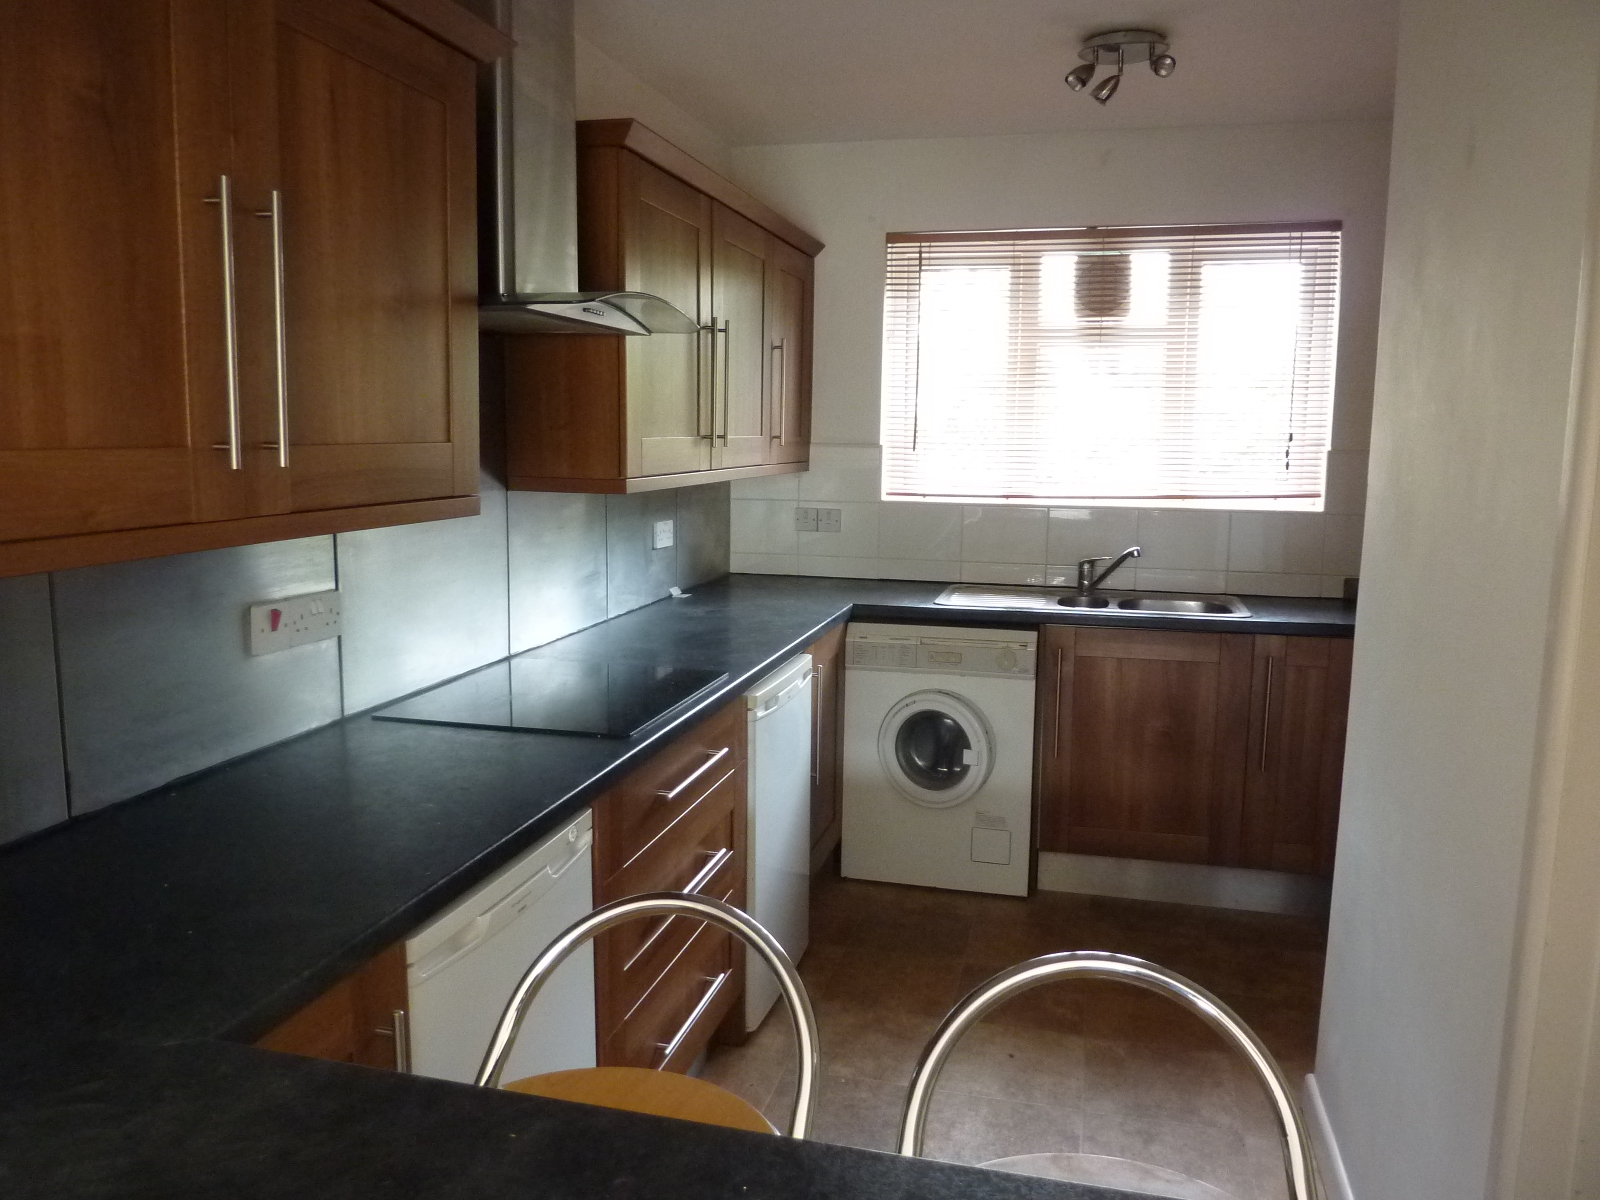 2 Bed Flat Bournemouth 2 Bed Flat To Rent Bournemouth Road Poole Bh14 0ex